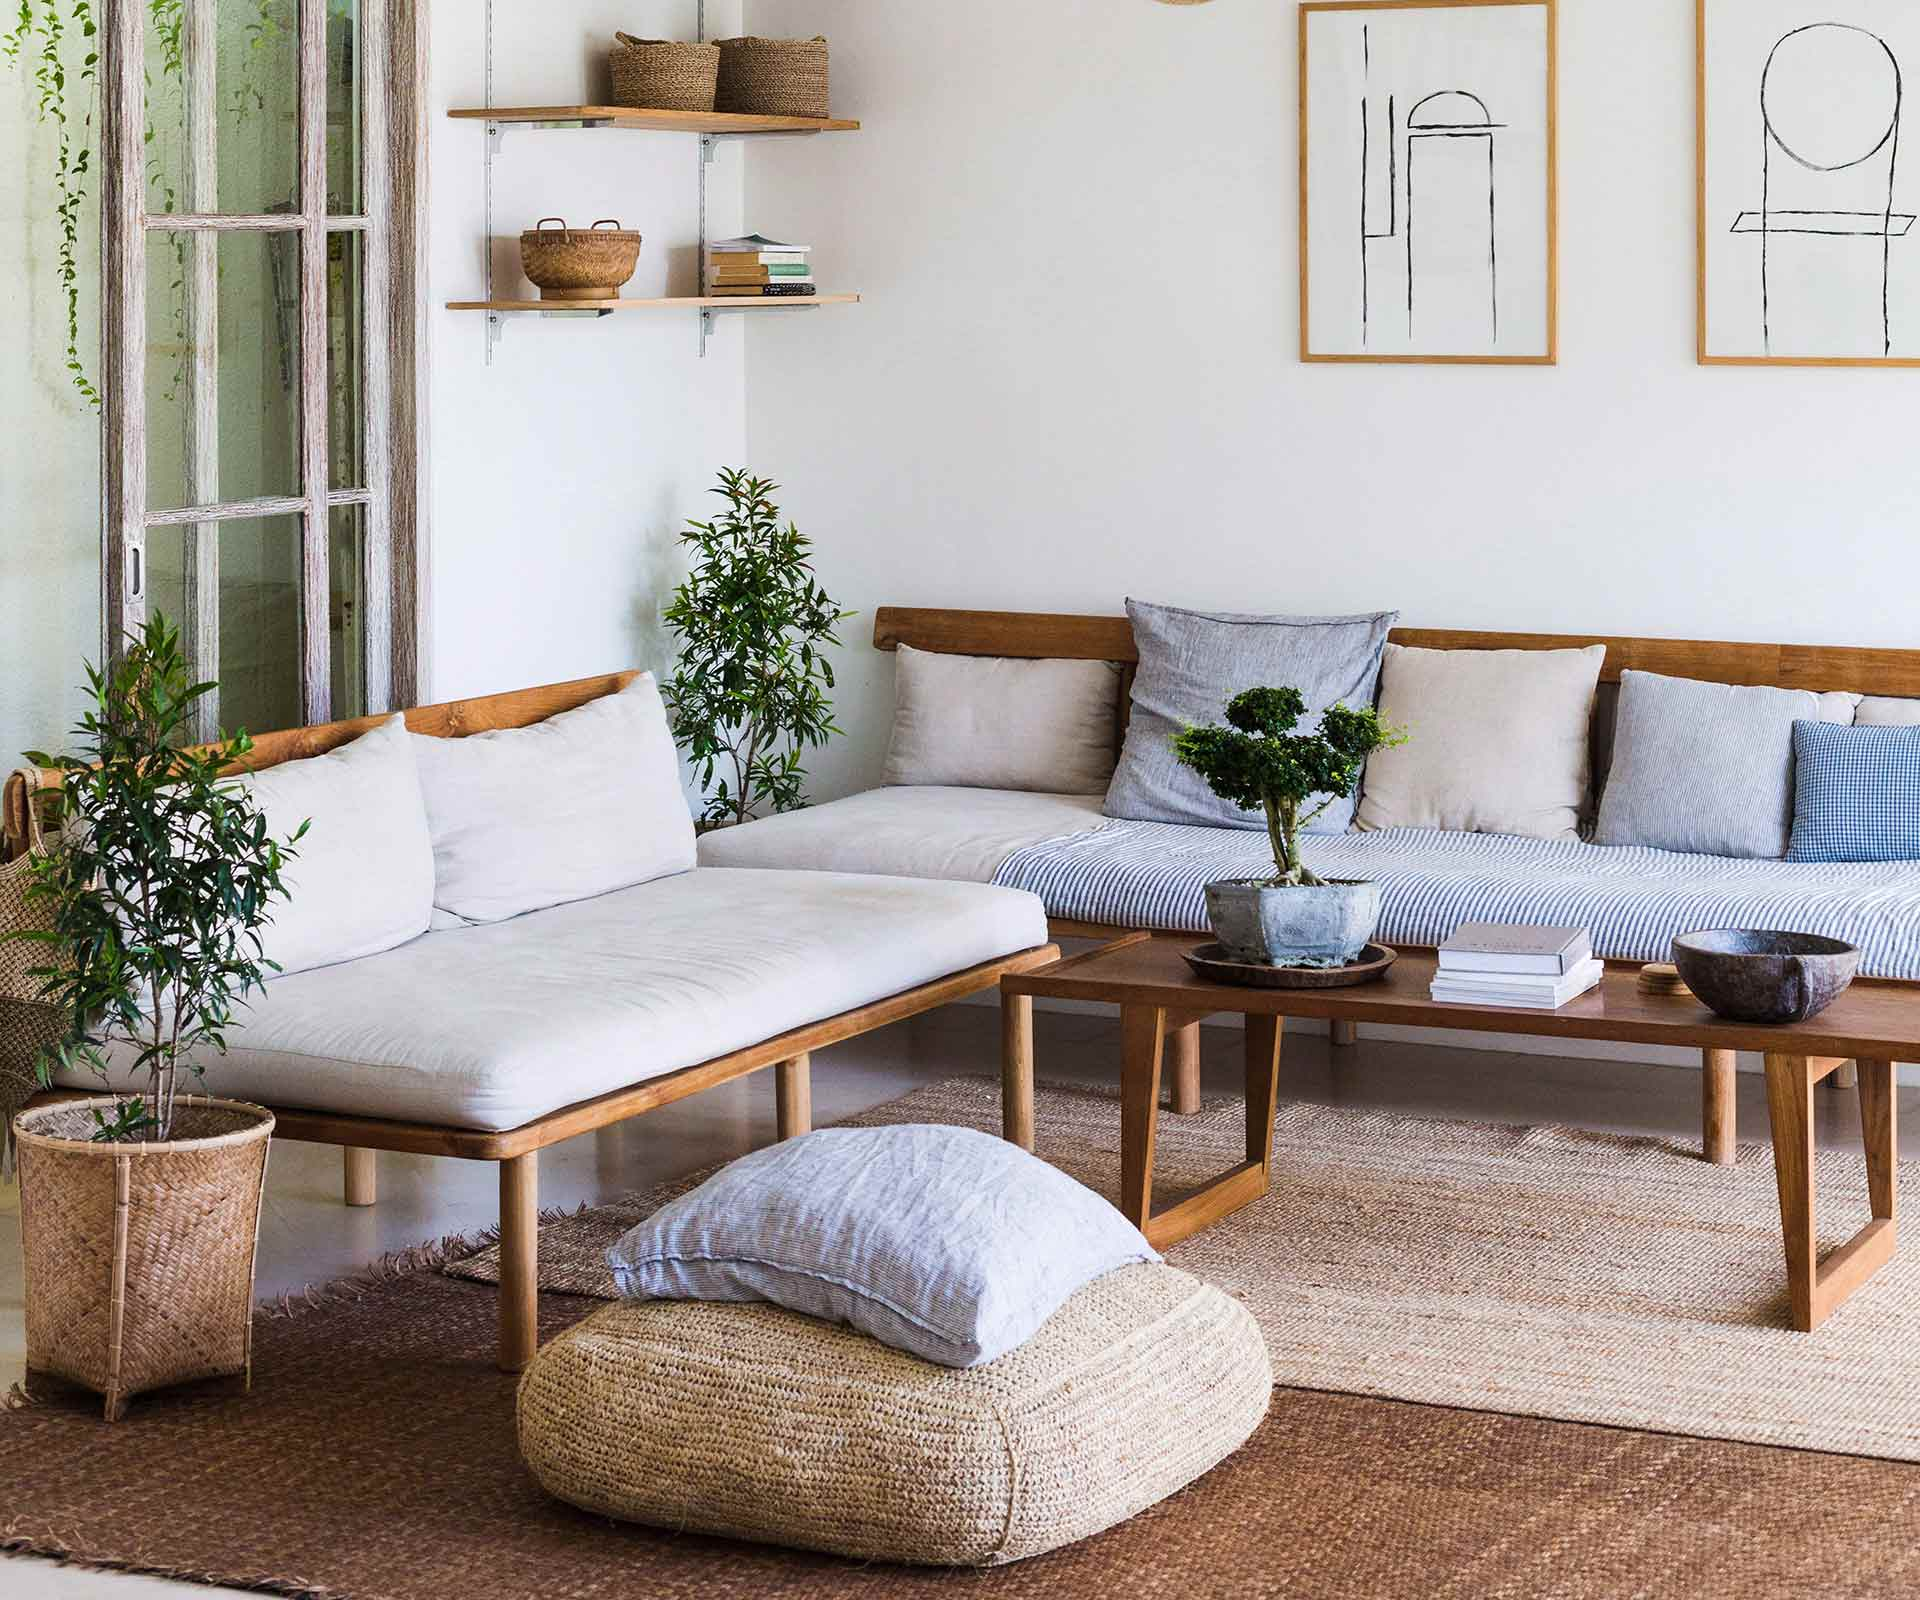 Asthma-friendly home: 5 ways to make your home asthma-proof